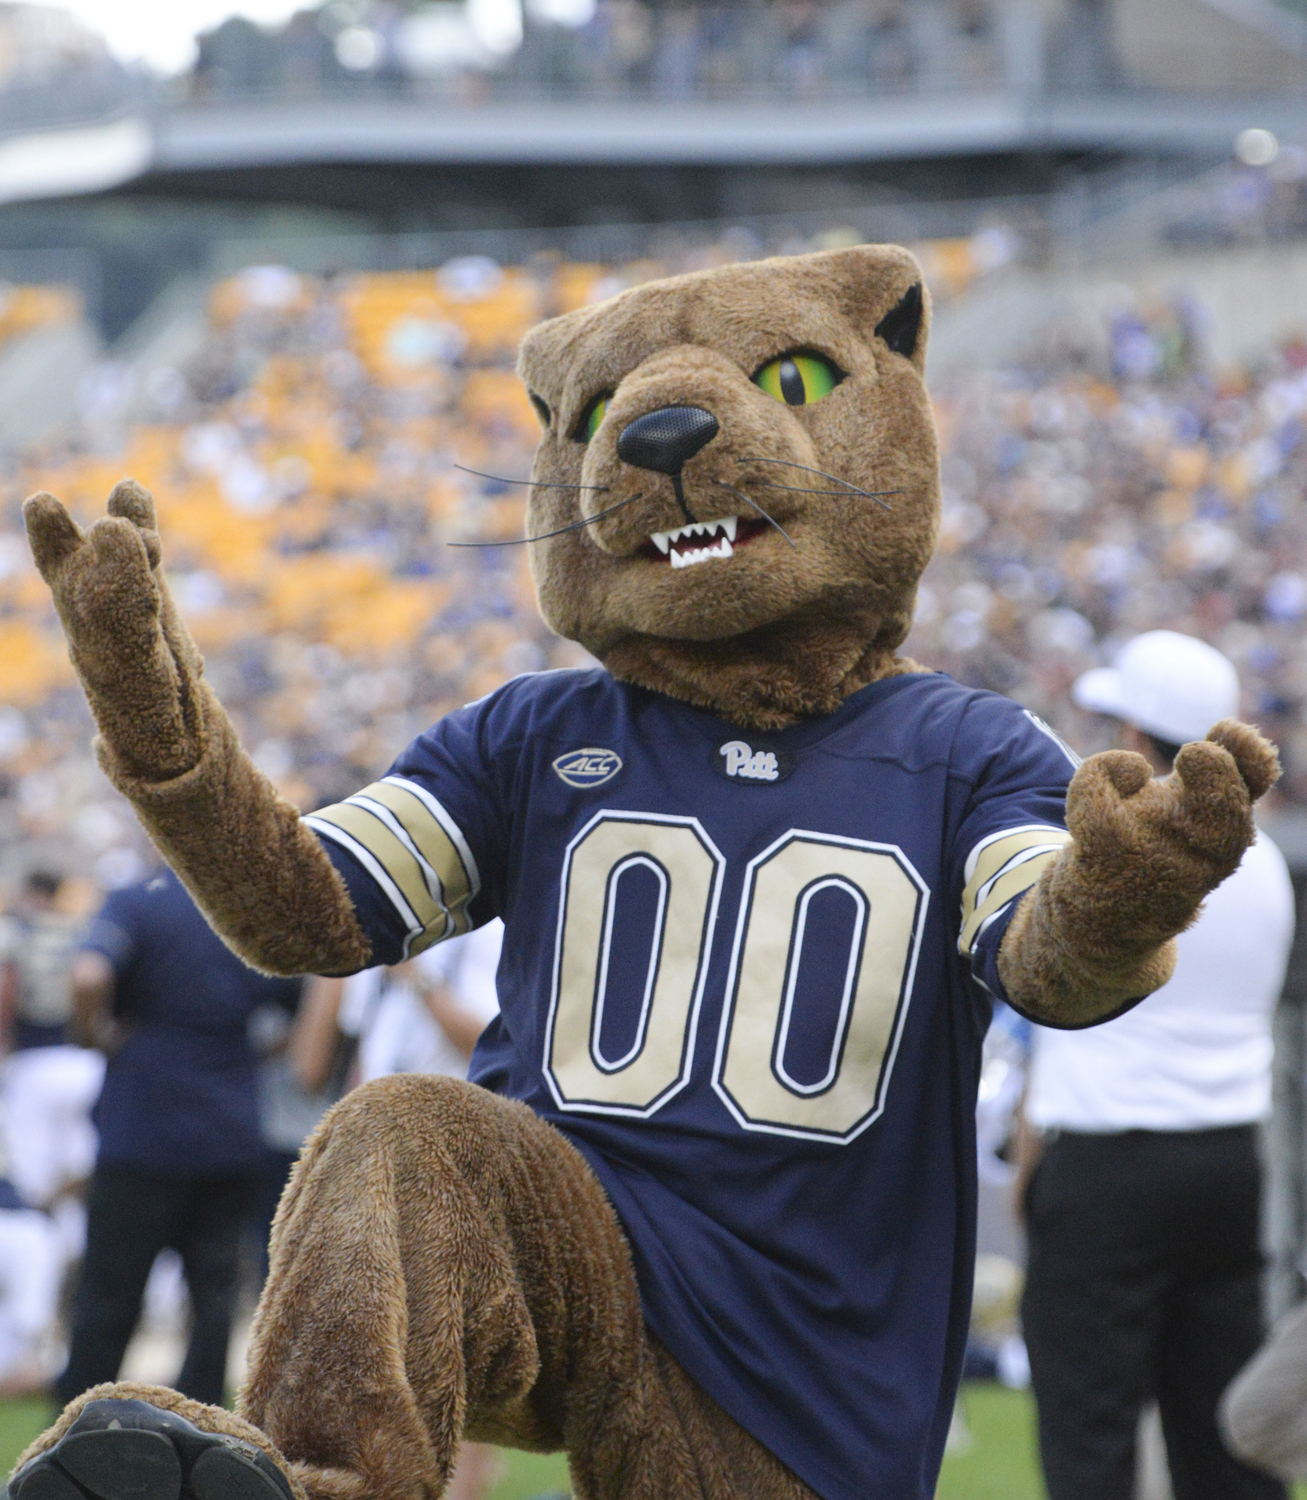 Panthers' mascot ROC dances on Heinz Field during Pitt's game against Georgia Tech Sept. 15, 2018.